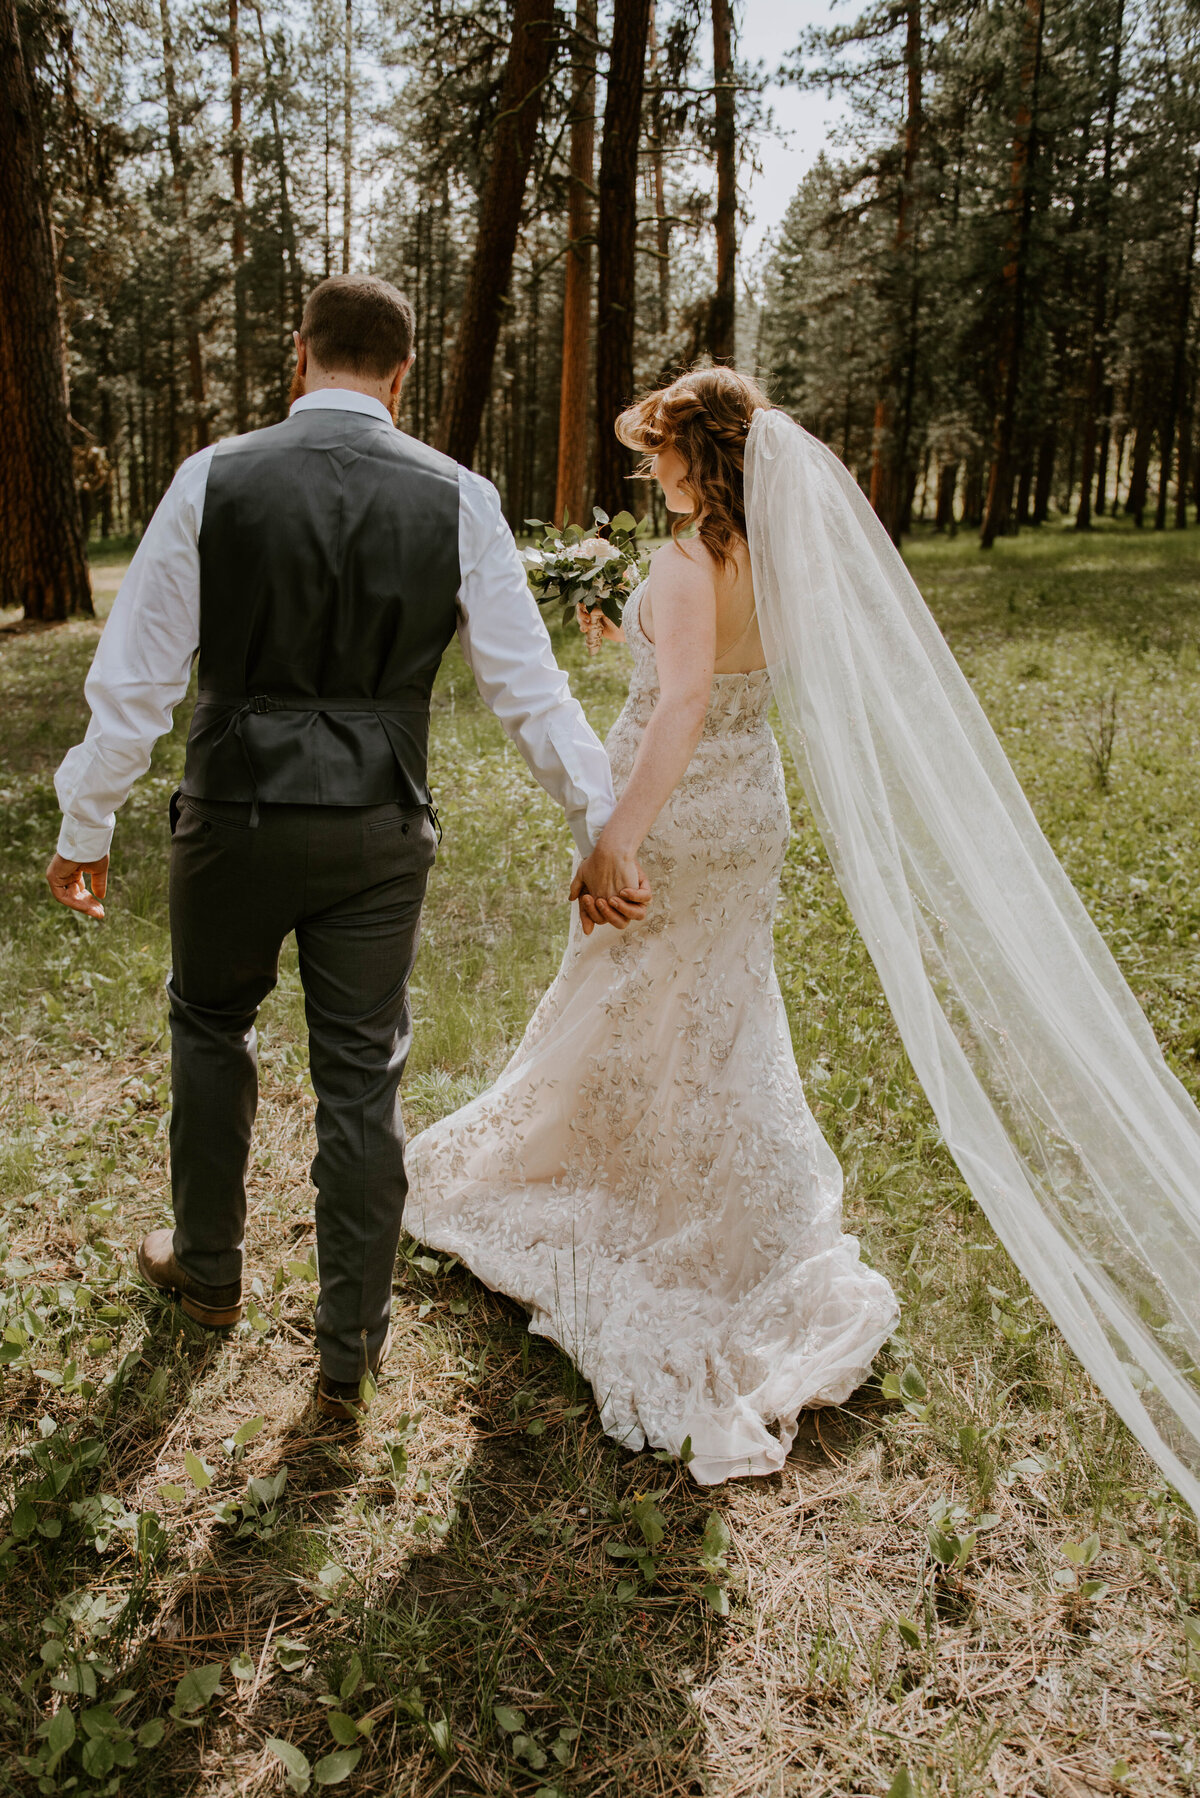 ochoco-forest-central-oregon-elopement-pnw-woods-wedding-covid-bend-photographer-inspiration2405